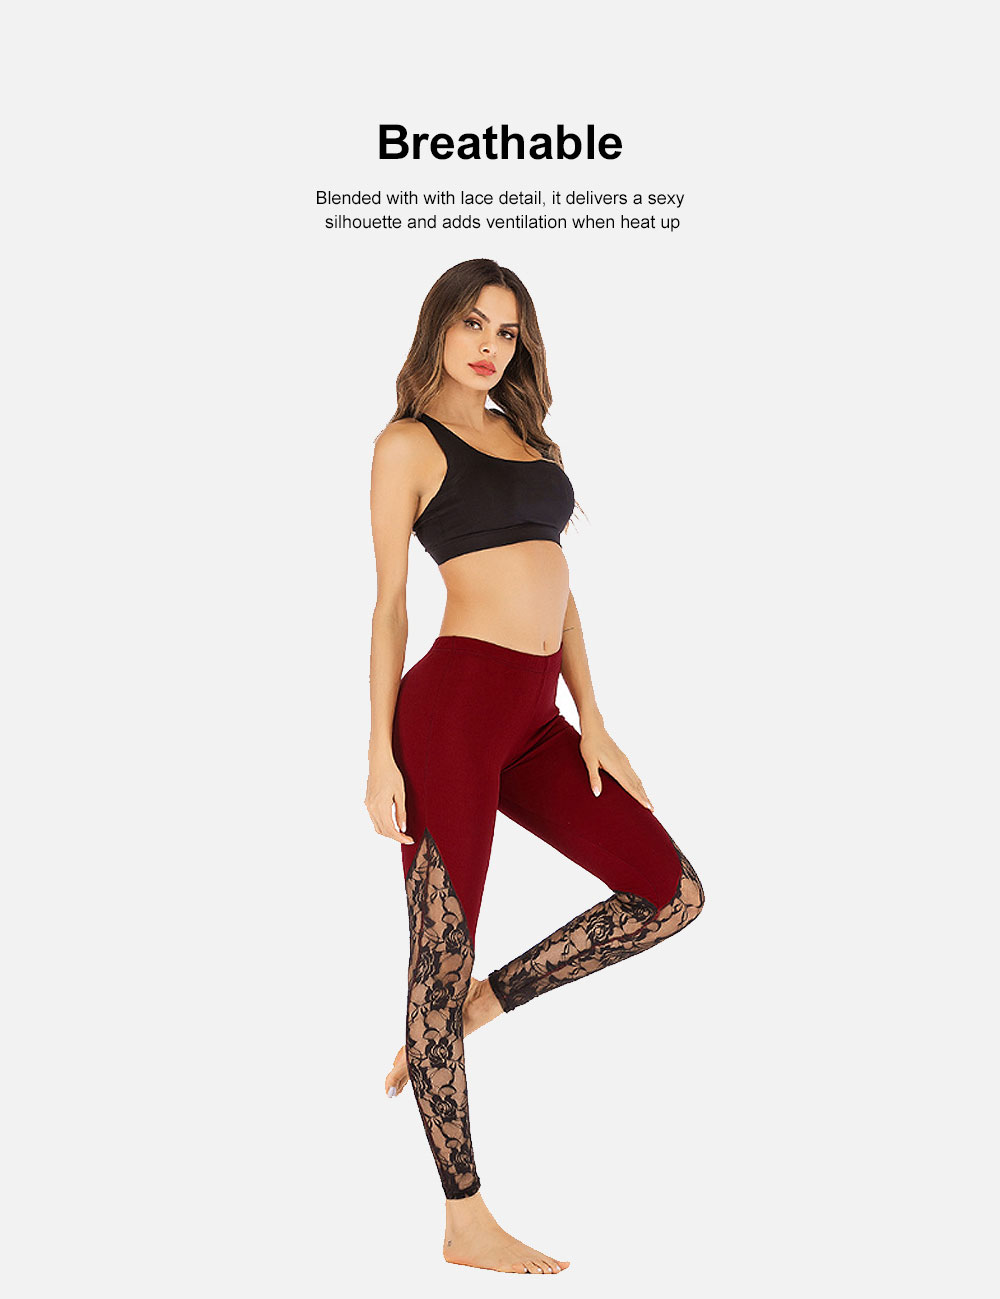 Trendy Lace Yoga Pant Fast-Dry Soft Polyester Trousers Elastic Waistband Breathable Sport Wear Pants for Women Lady 4 Colors 2